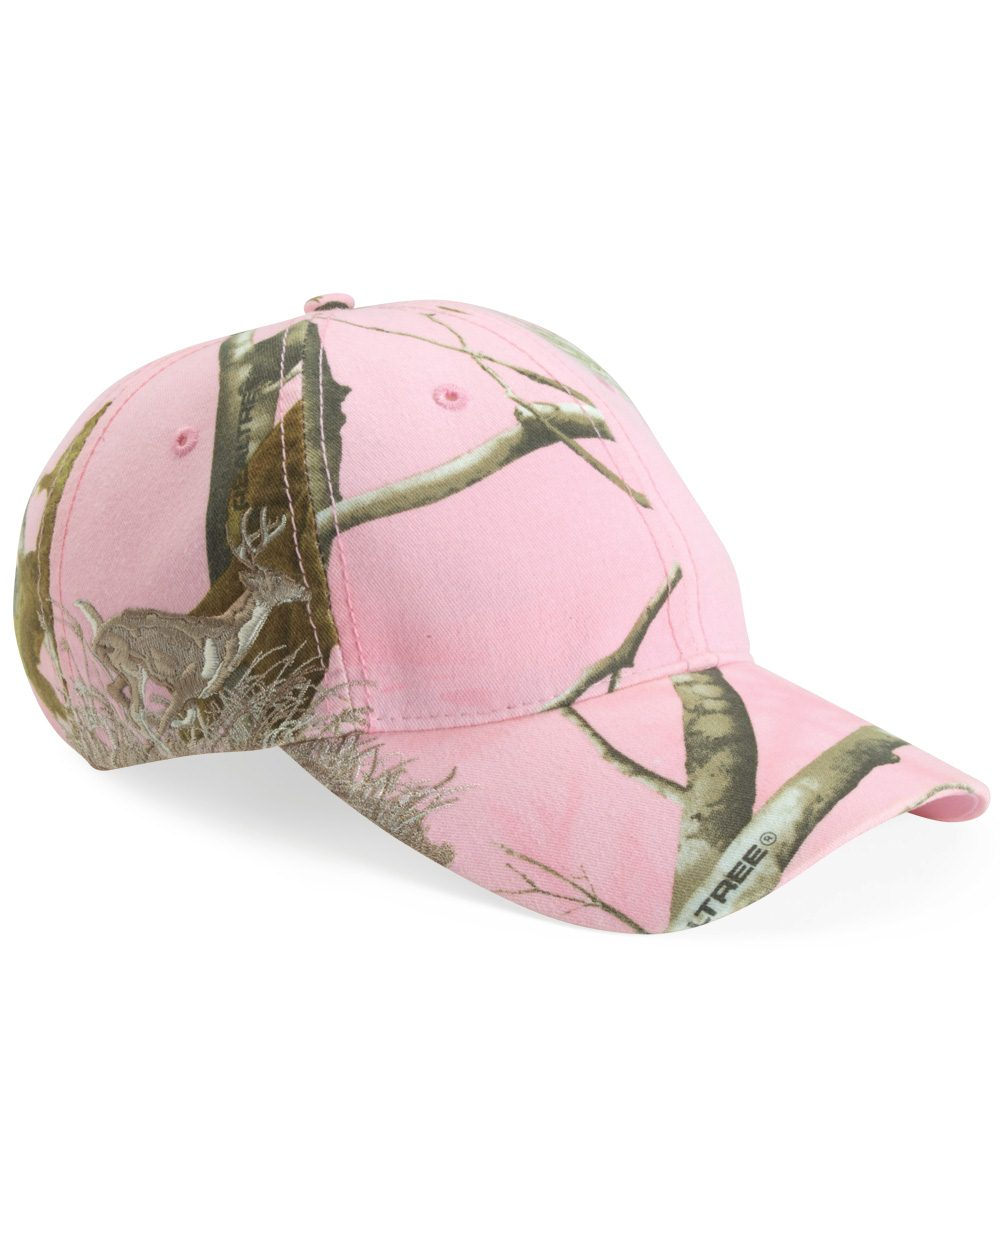 DRI DUCK 3268 - Relaxed Fit Buck Cap